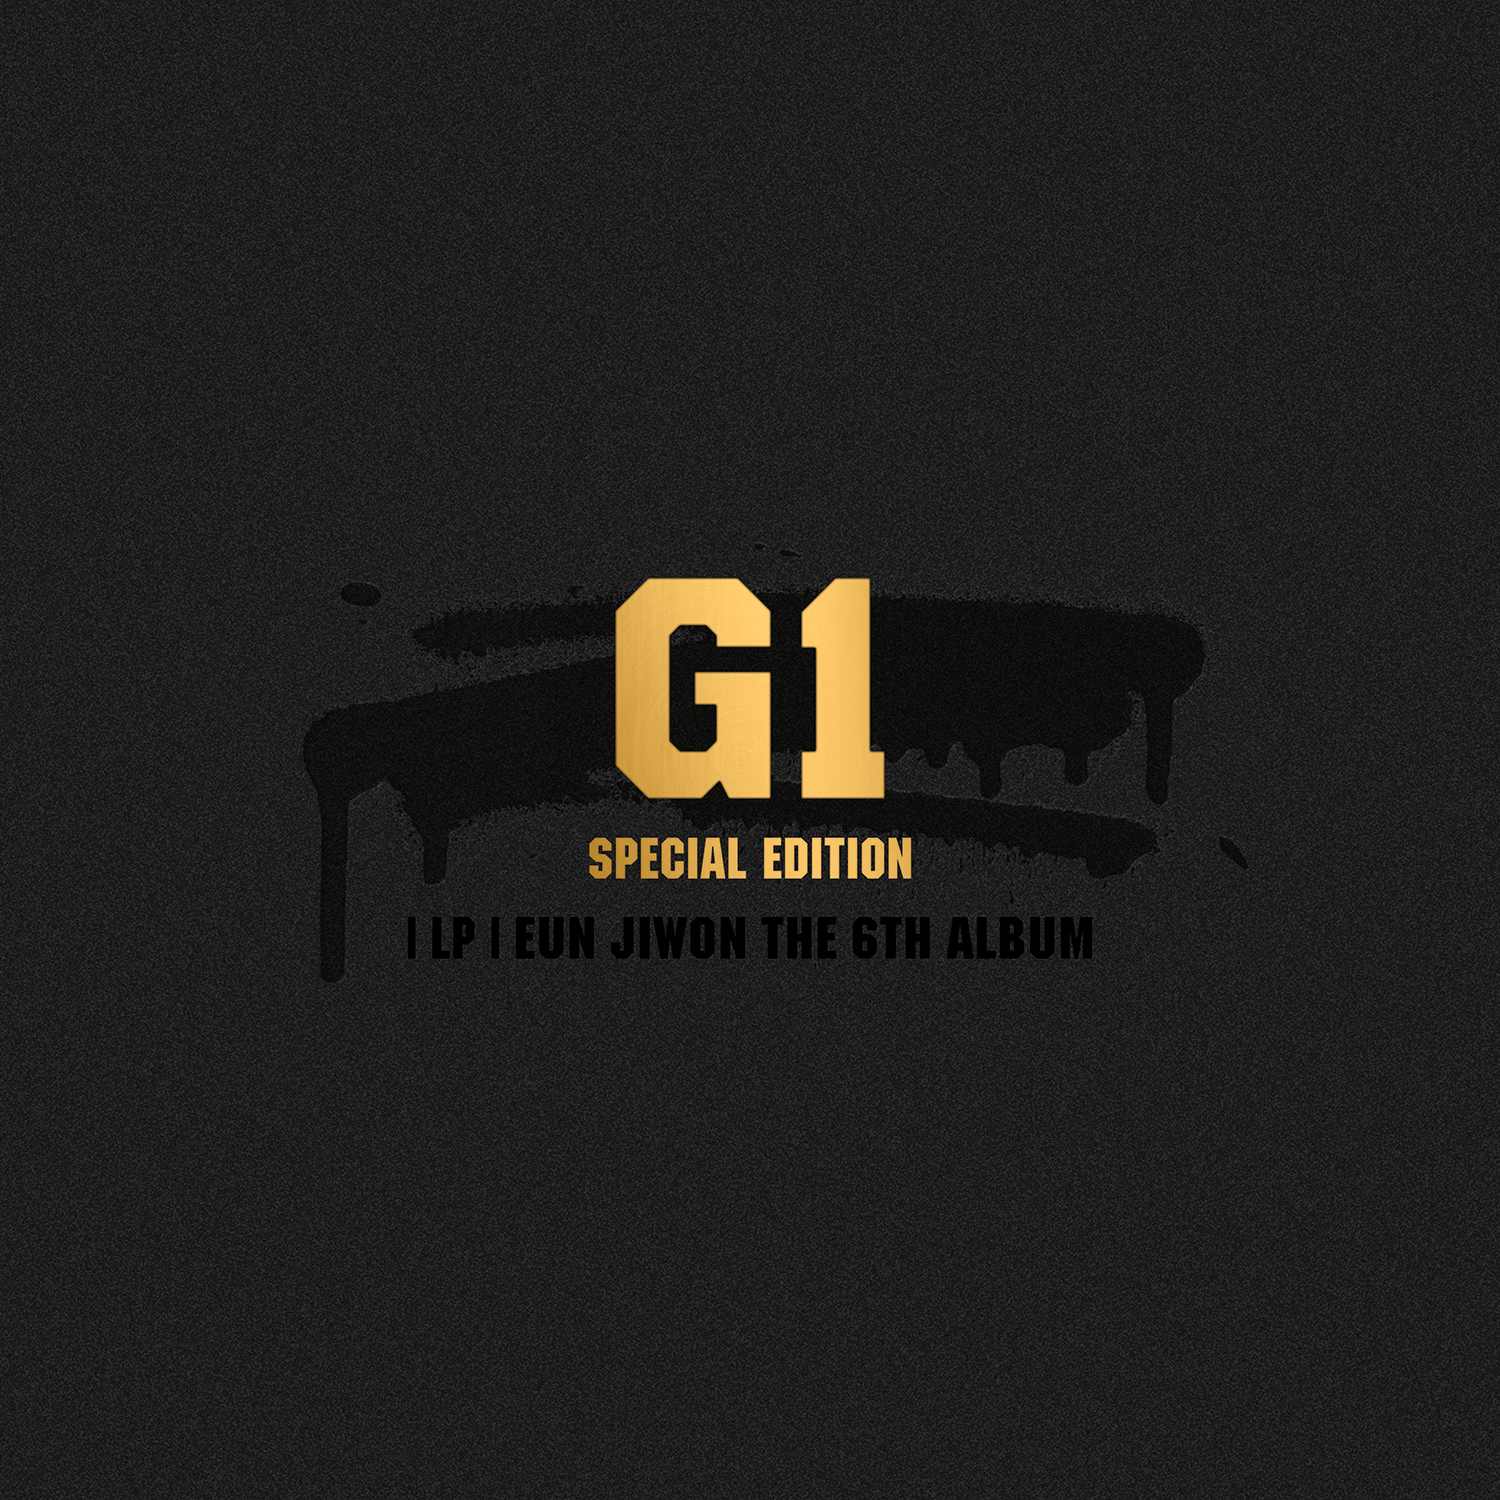 XLPX EUN JIWON THE 6TH ALBUM : G1